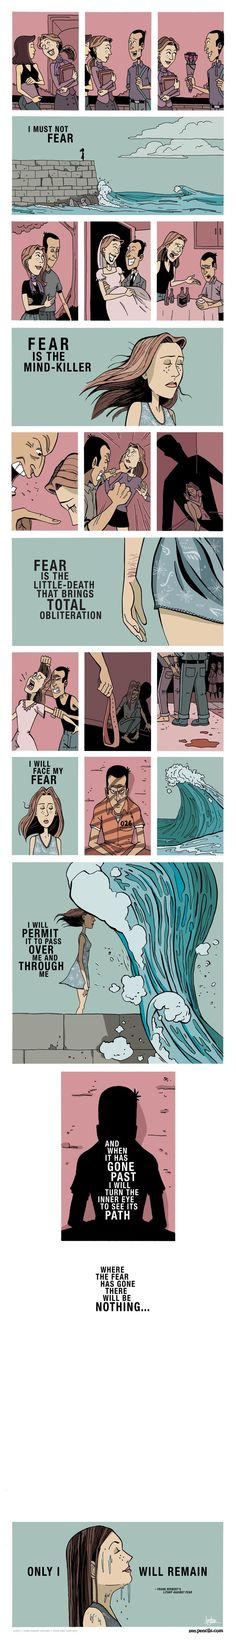 TRIGGER WARNING: A comic from Zen pencils. Based on Frank Herbert's incredible 'Litany Against Fear' from the Dune series. The Litany is an incantation used by the Bene Gesserit, a sisterhood of powerful women. Beautiful: